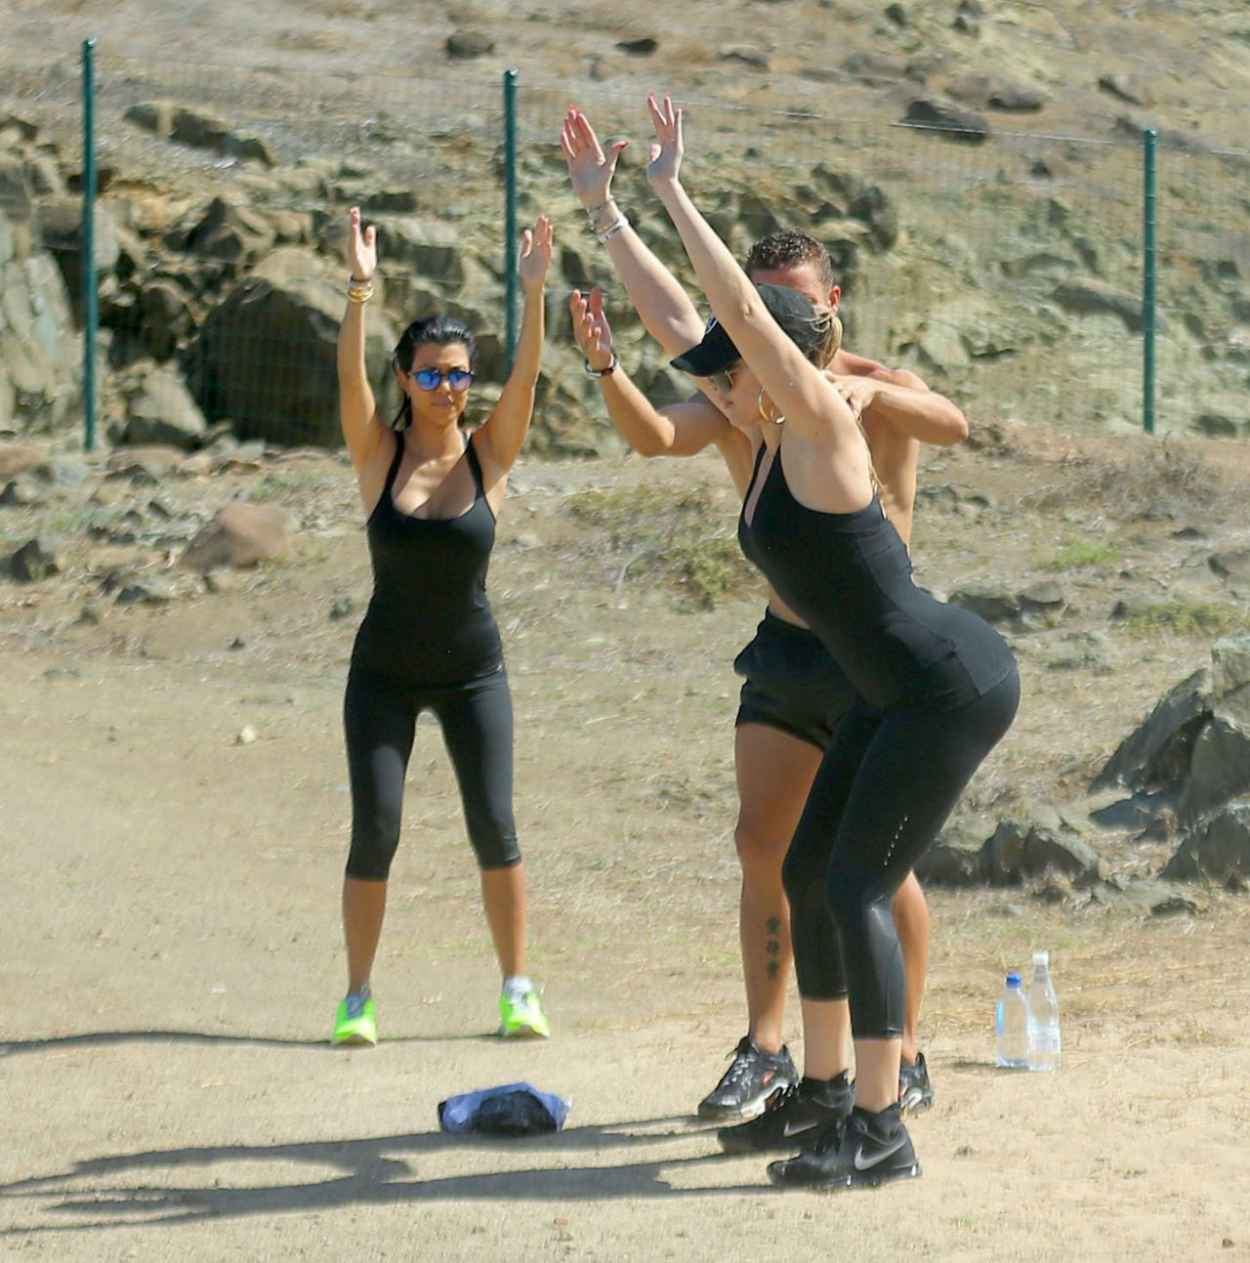 Khloe, Kourtney & Kim Kardashian - Workout in St. Barts, August 2015-5